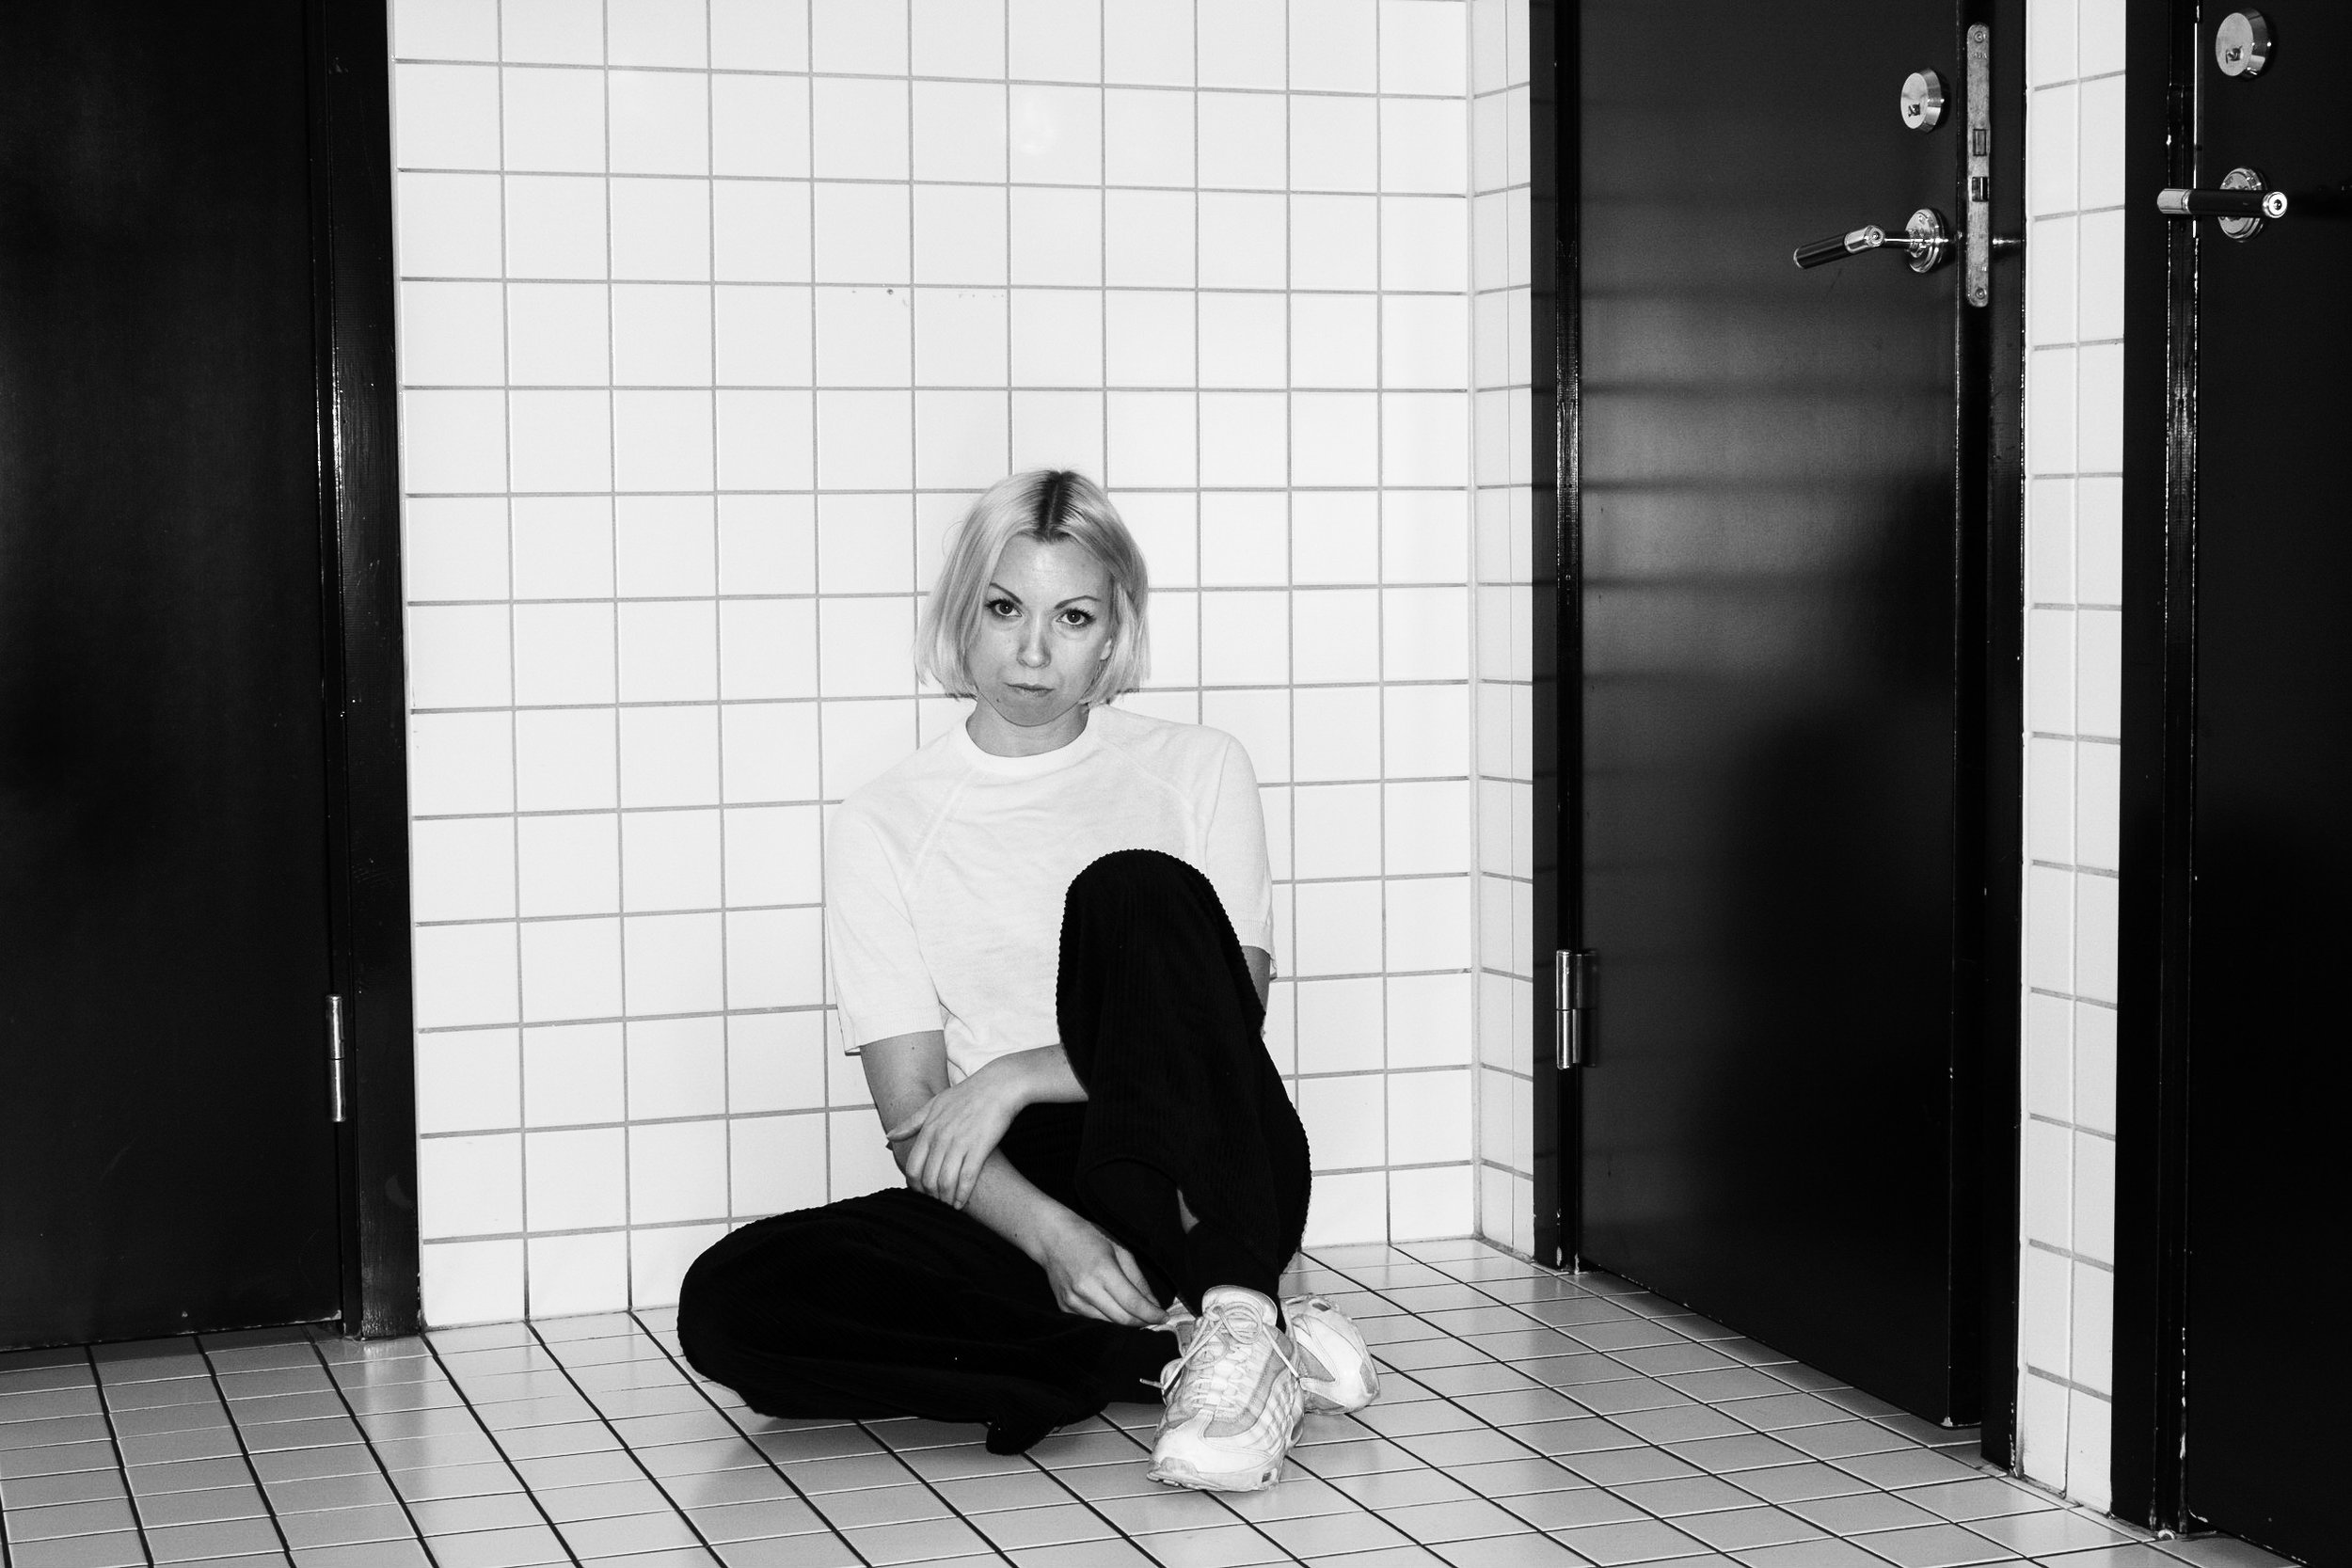 THERESE LITHNER - BOOKING: AXEL@ECHOTHREE.SELABEL: LAZY OCTOPUS RECORDS